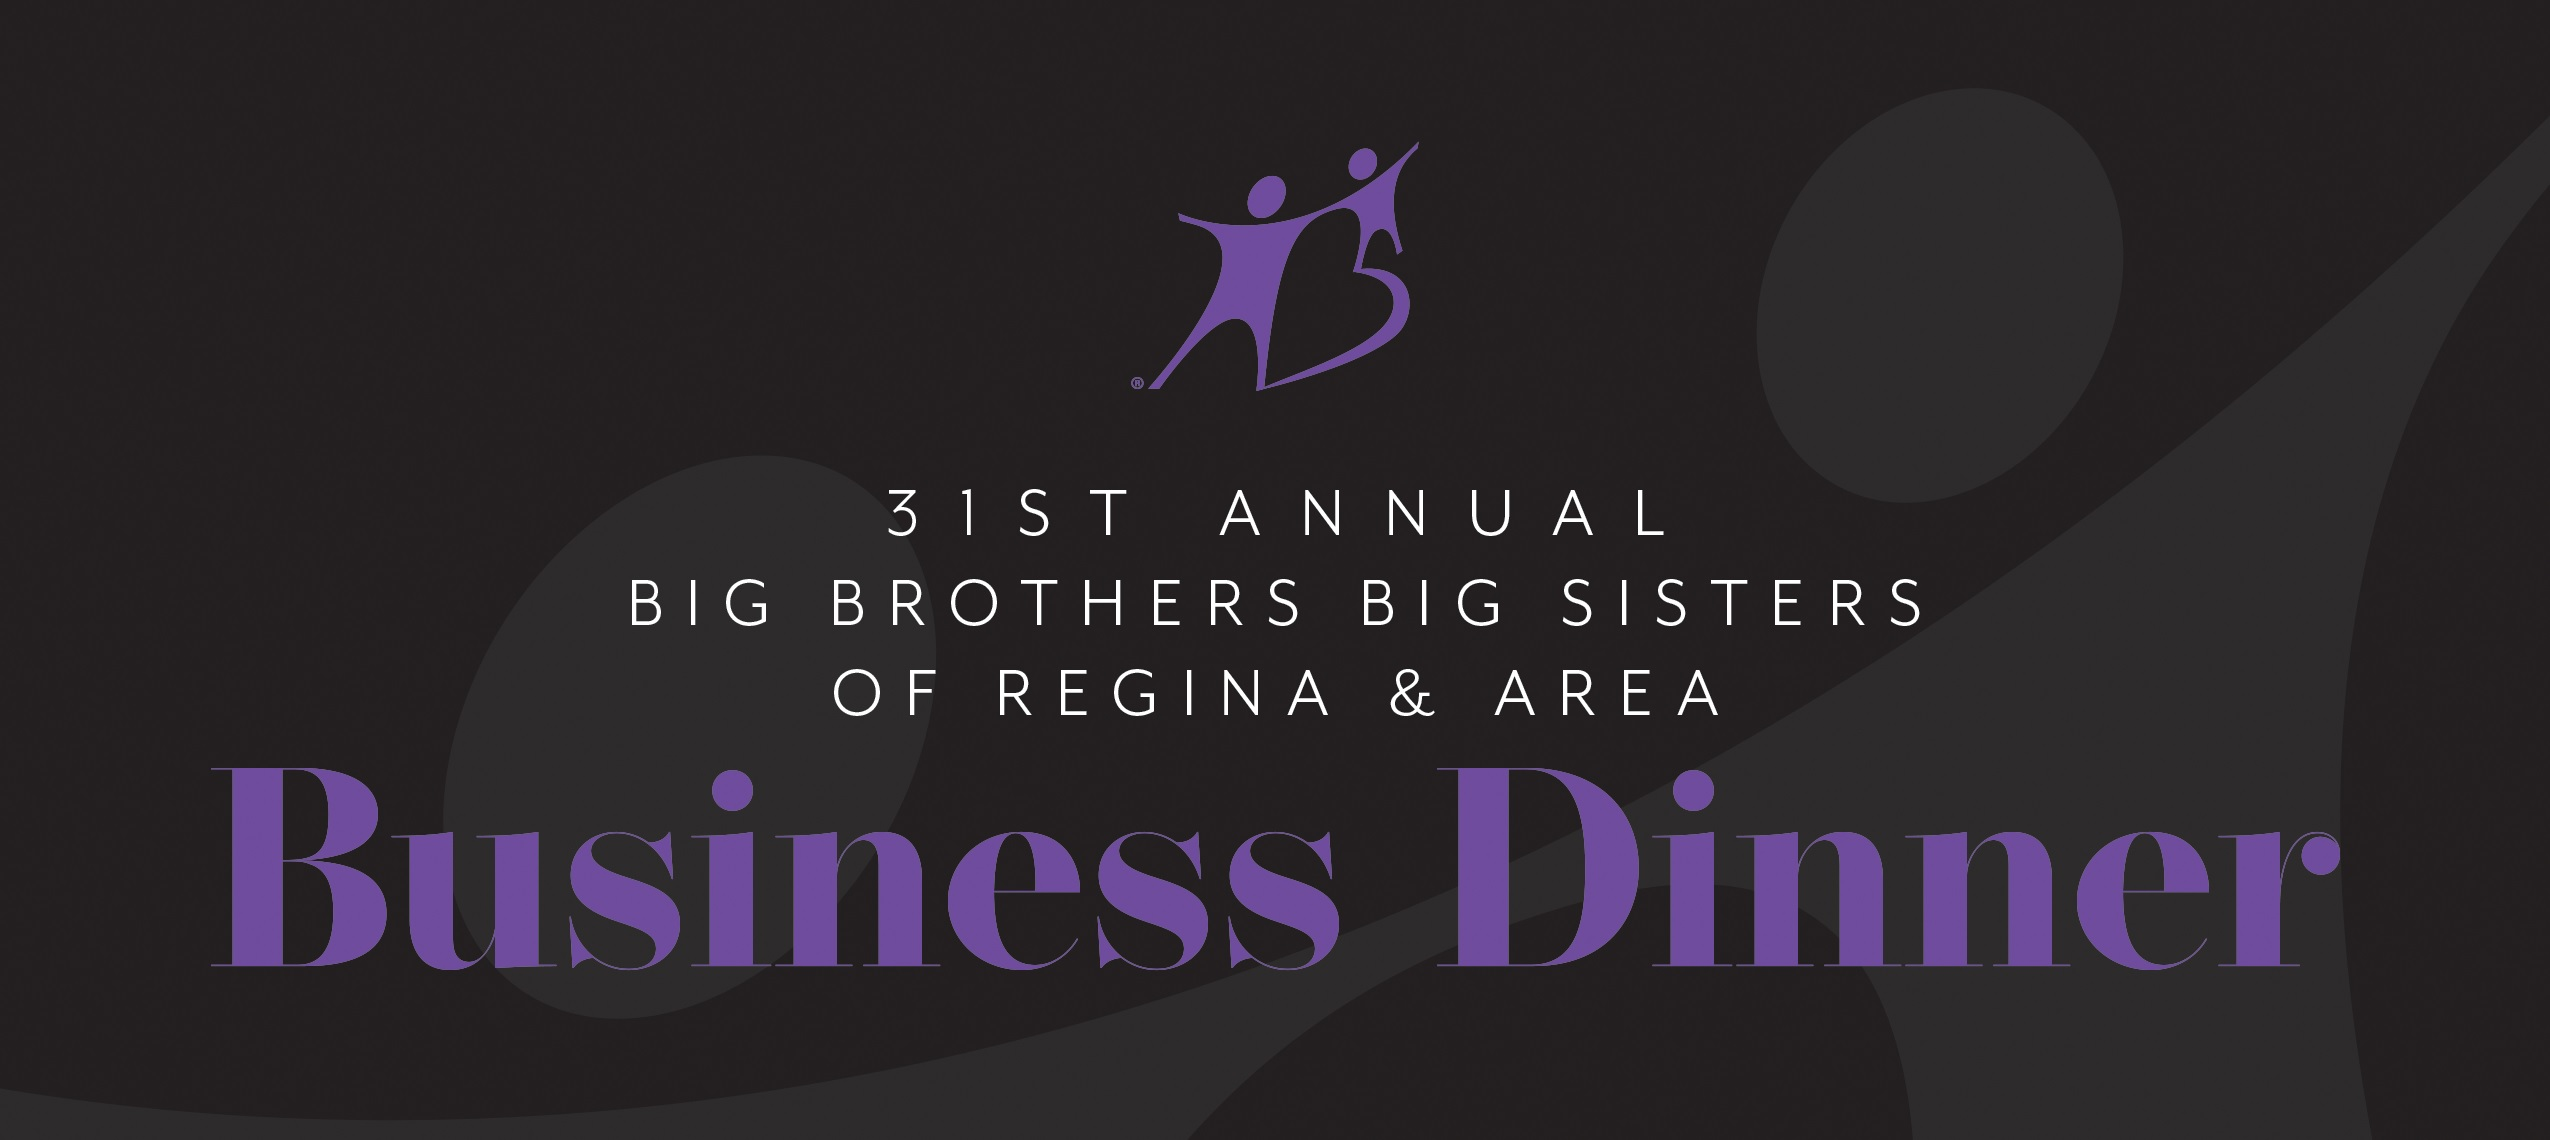 31st Annual Business Dinner - Presented by PTI Transformers Inc.